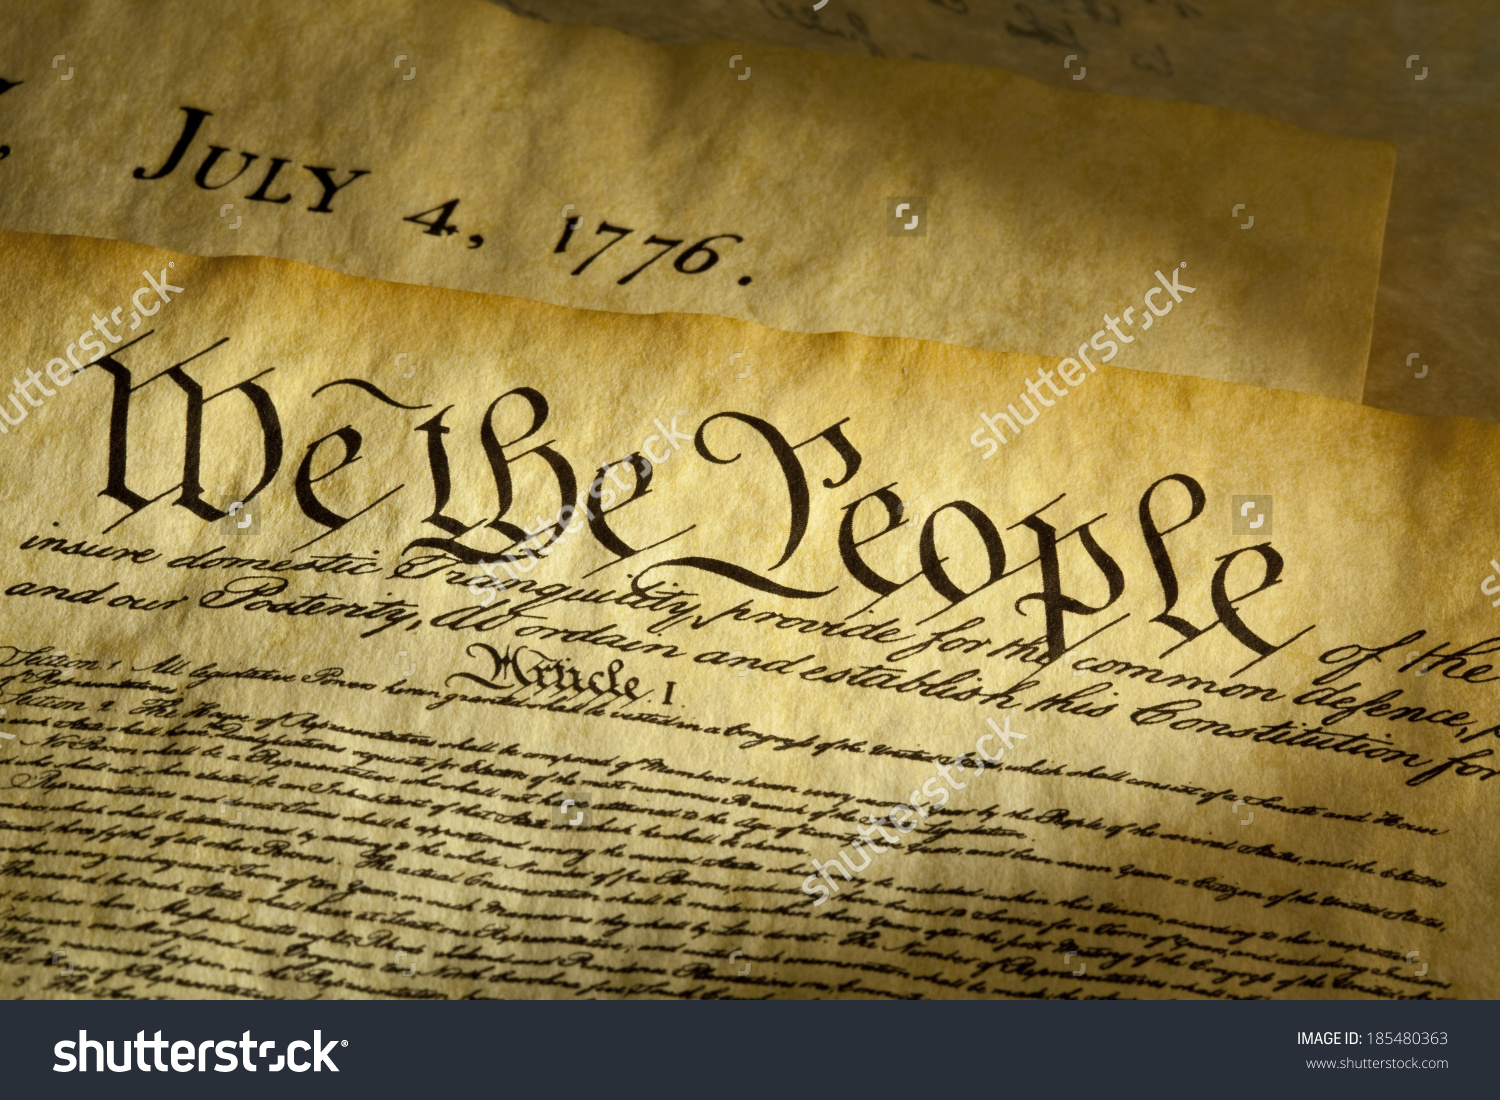 The people of the united states clipart banner free The Preamble of Constitution of the United States Clip Art ... banner free